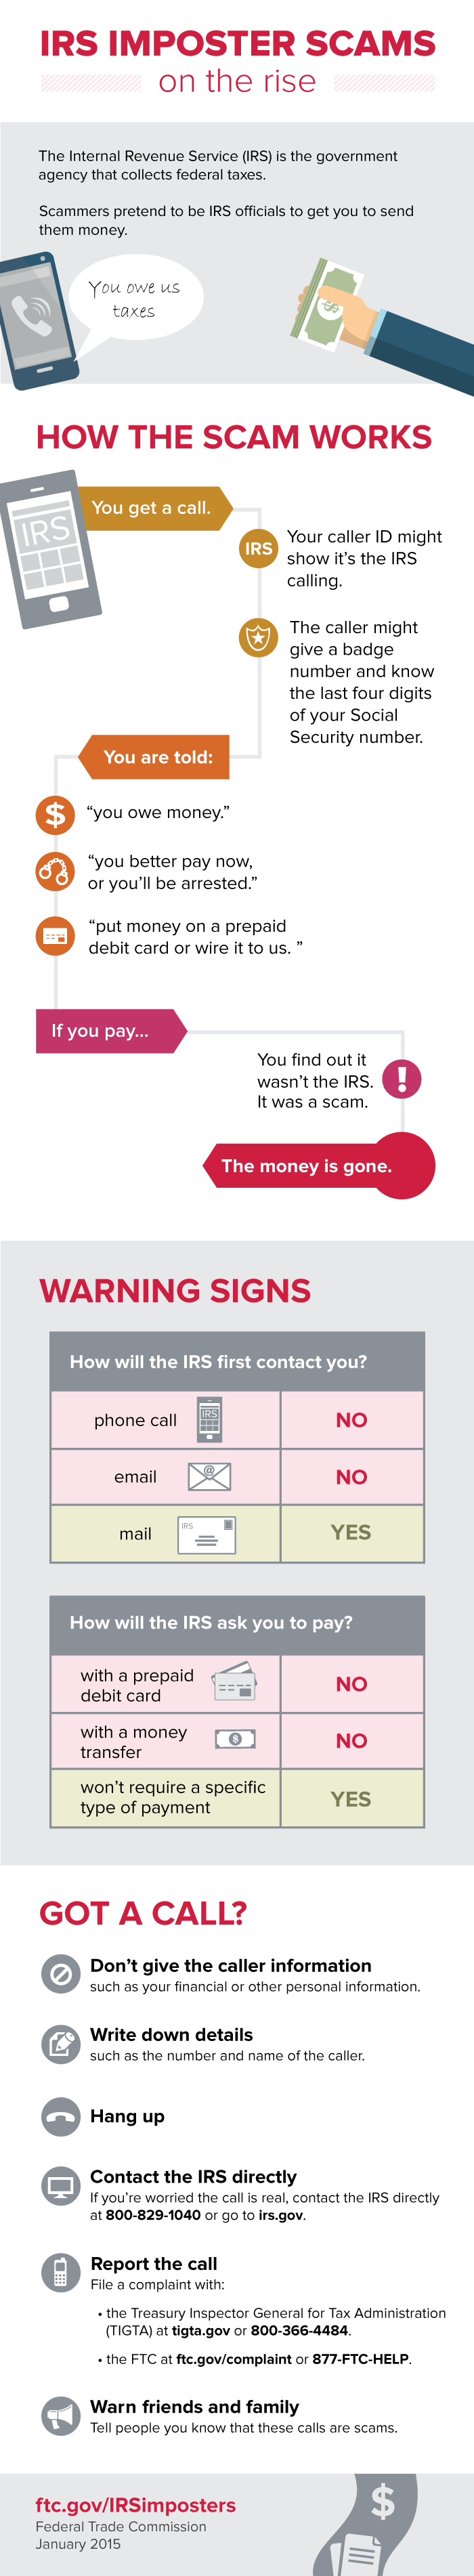 Scammers Pretend To Be Irs Officials Get You Send Them Money